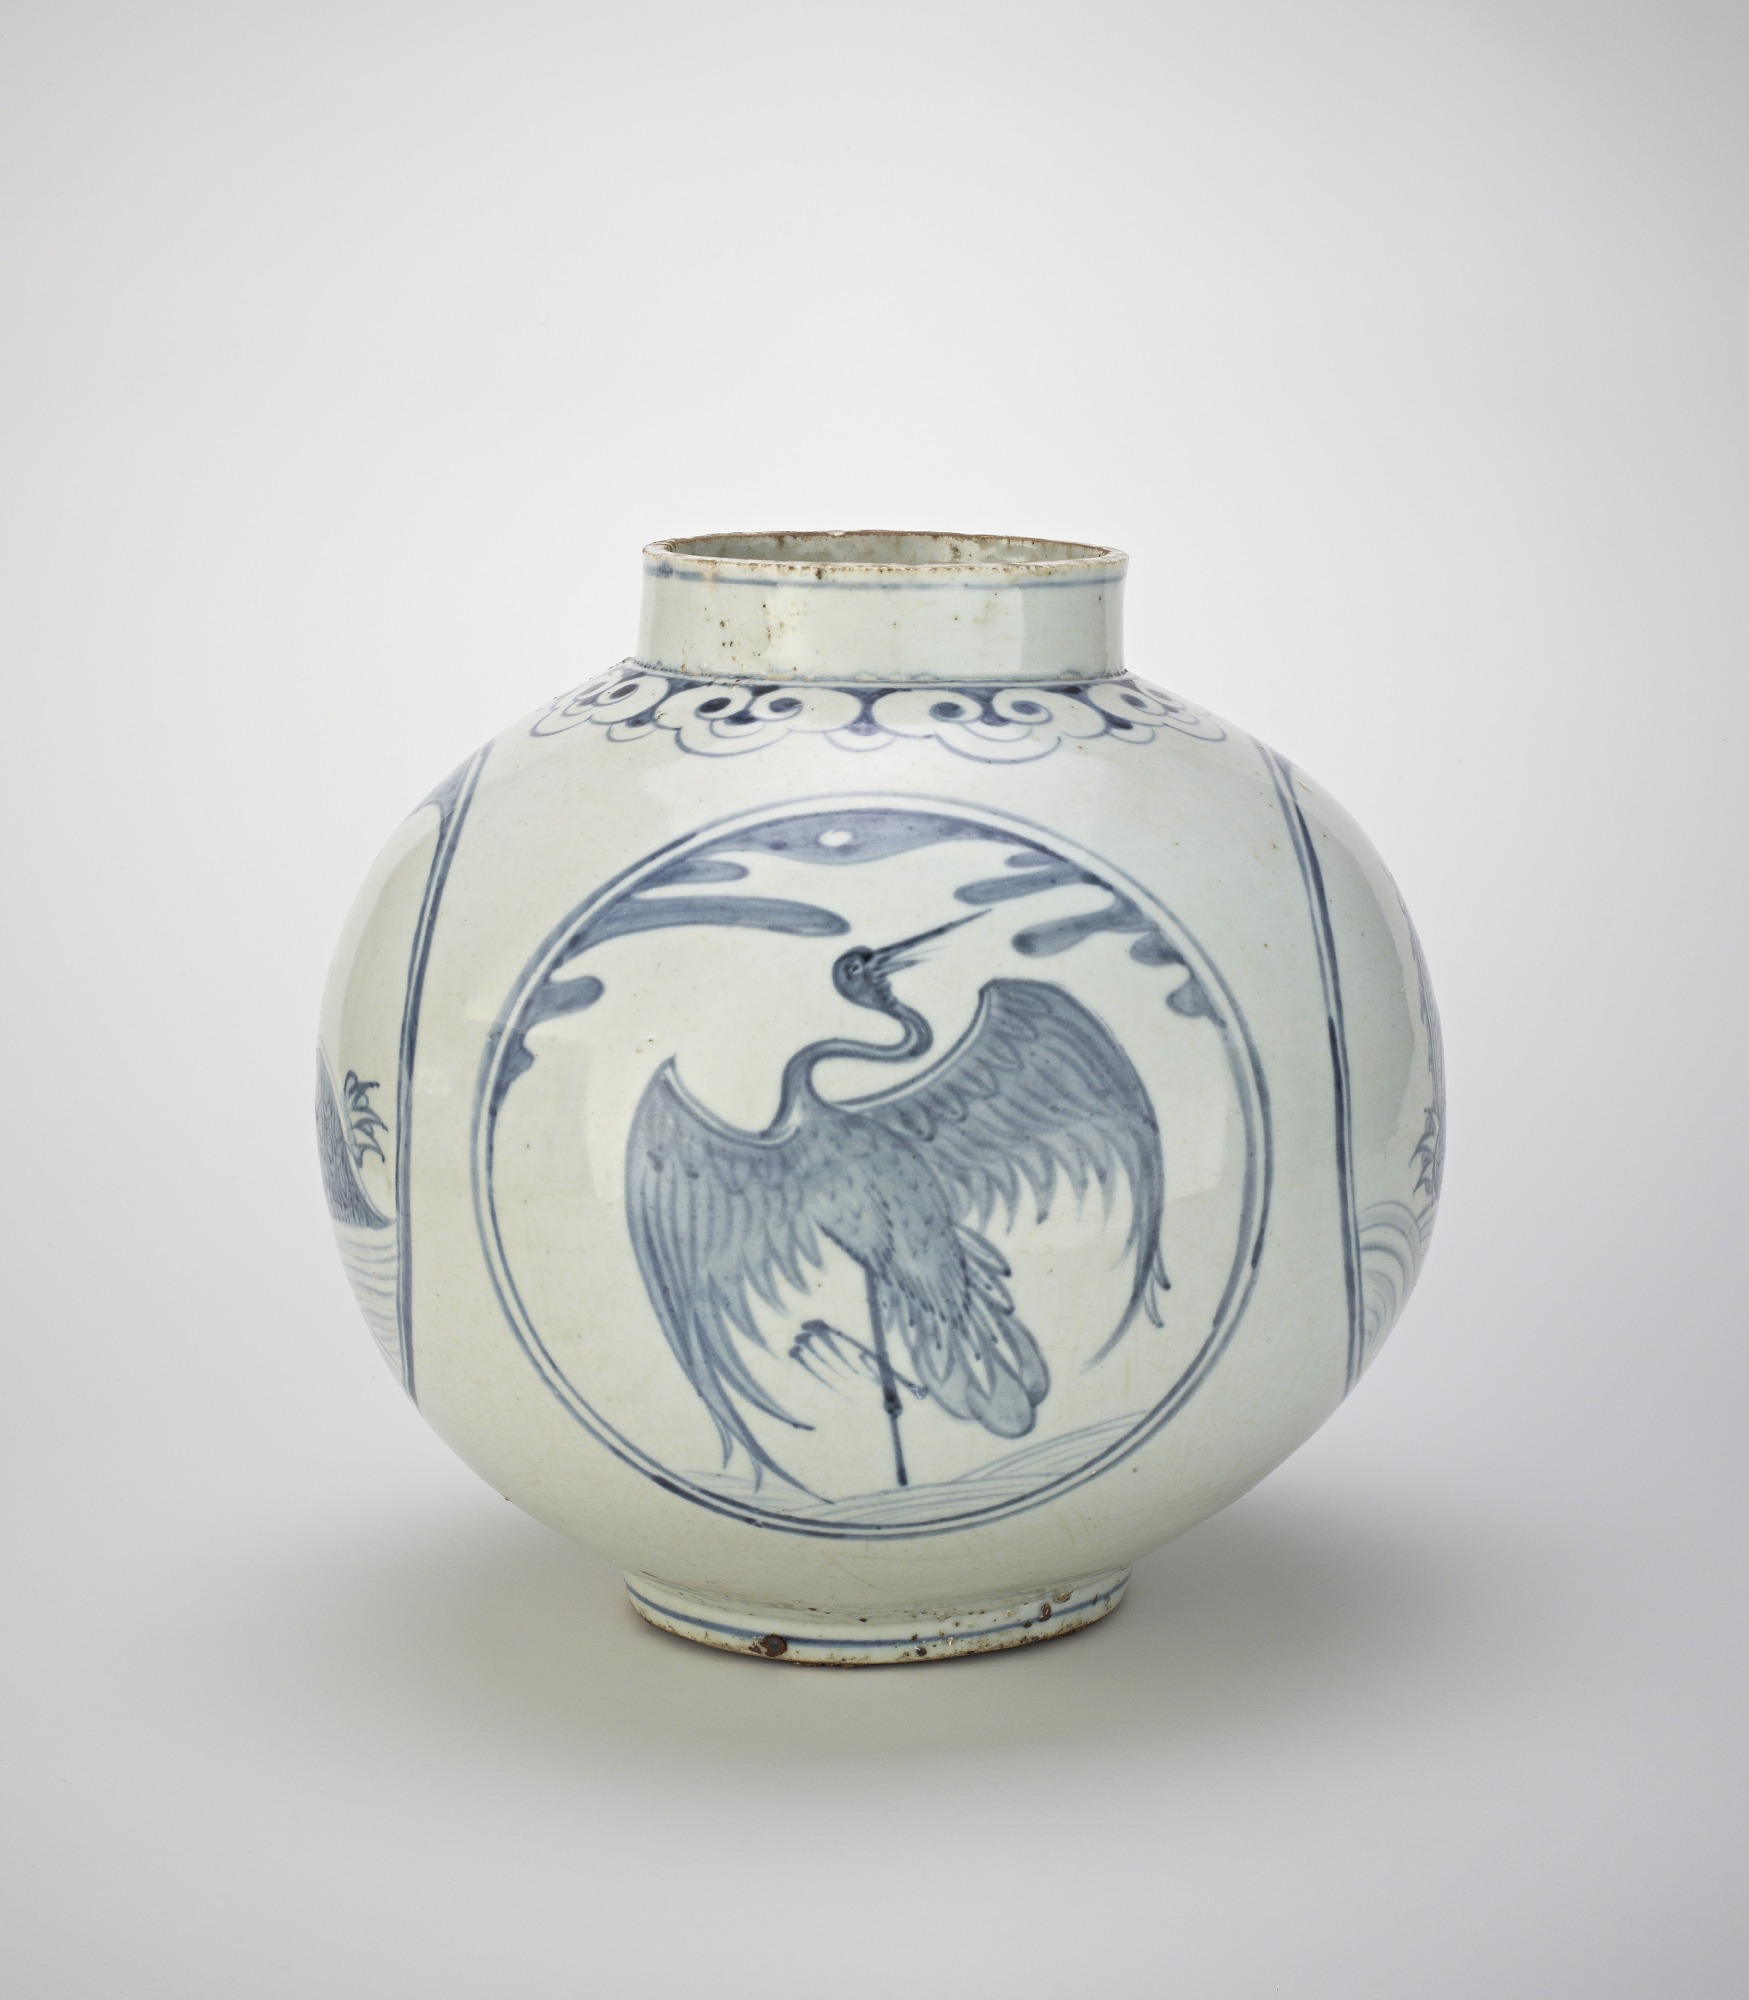 Jar with designs of tortoises and cranes